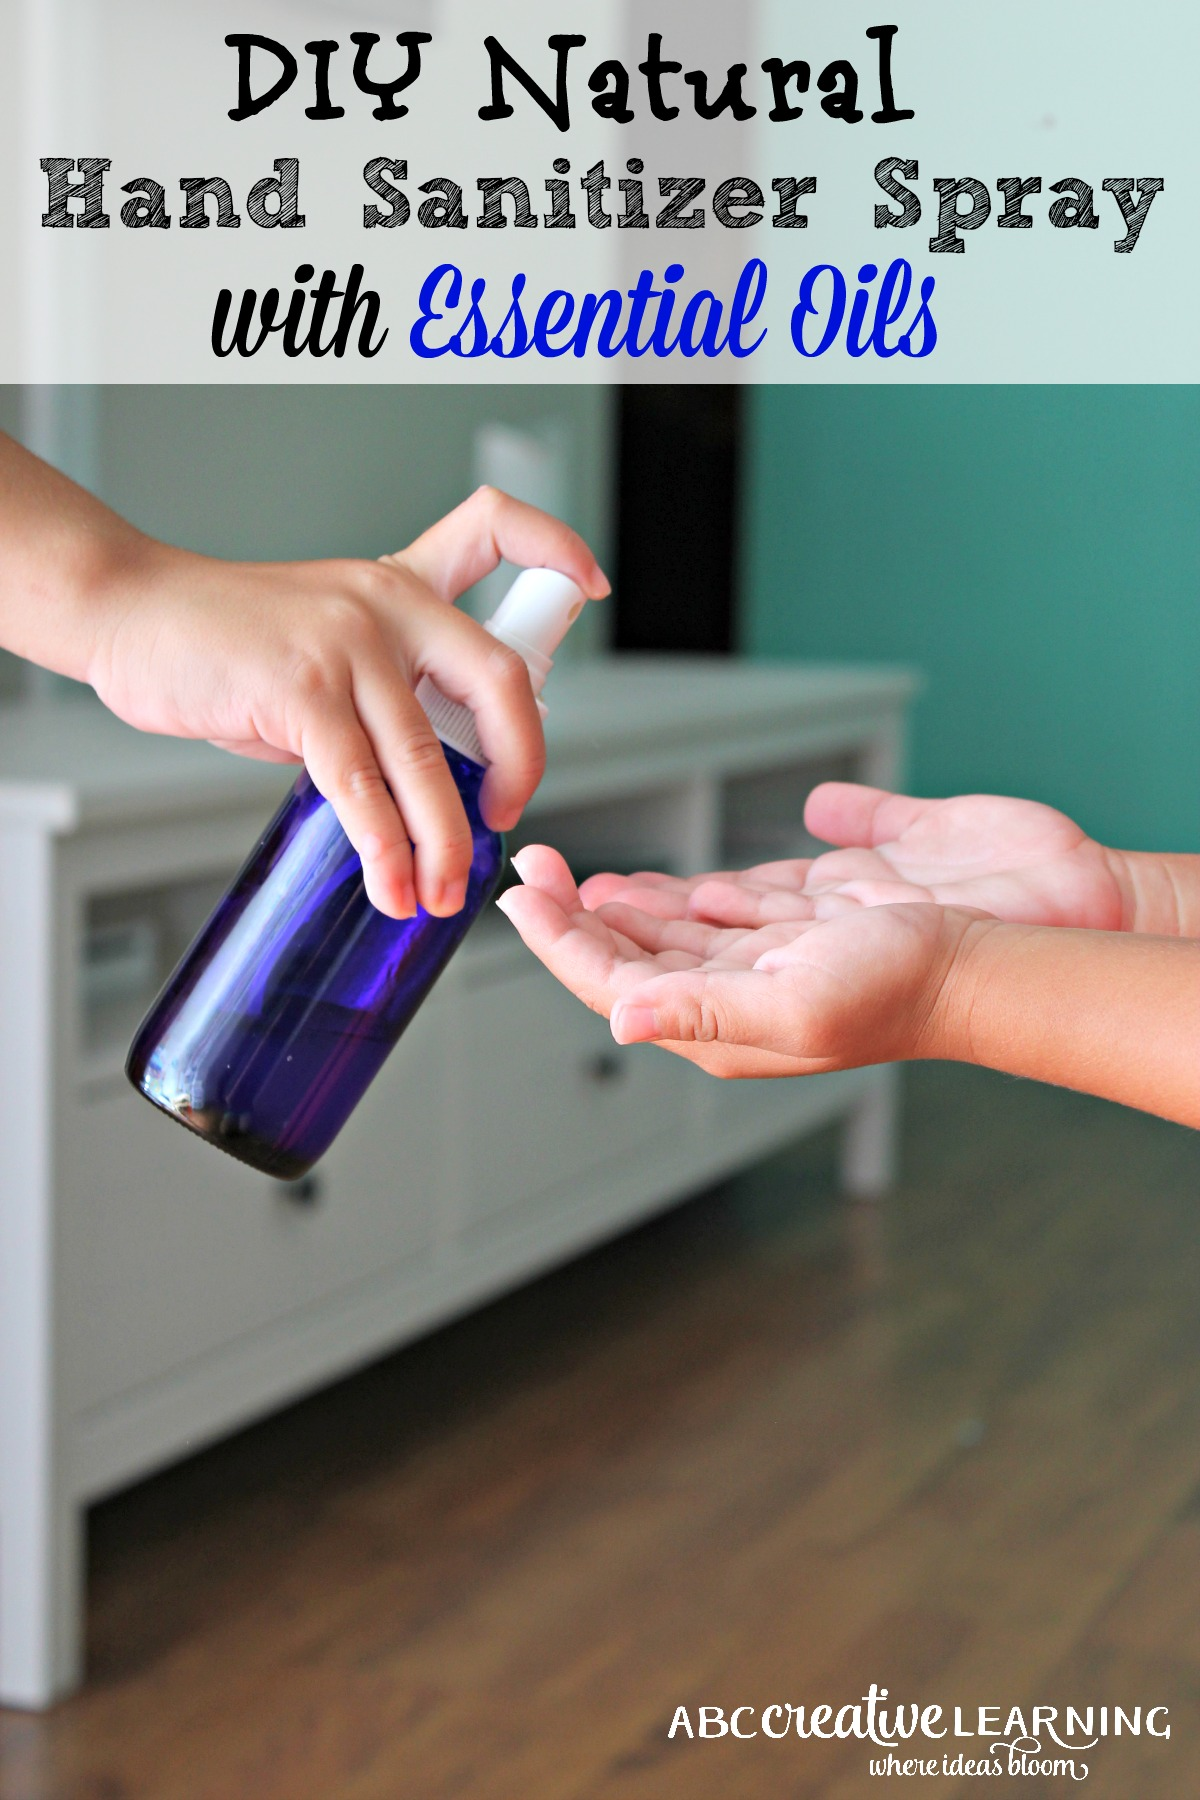 DIY Natural Hand Sanitizer Spray with Essential Oils WM